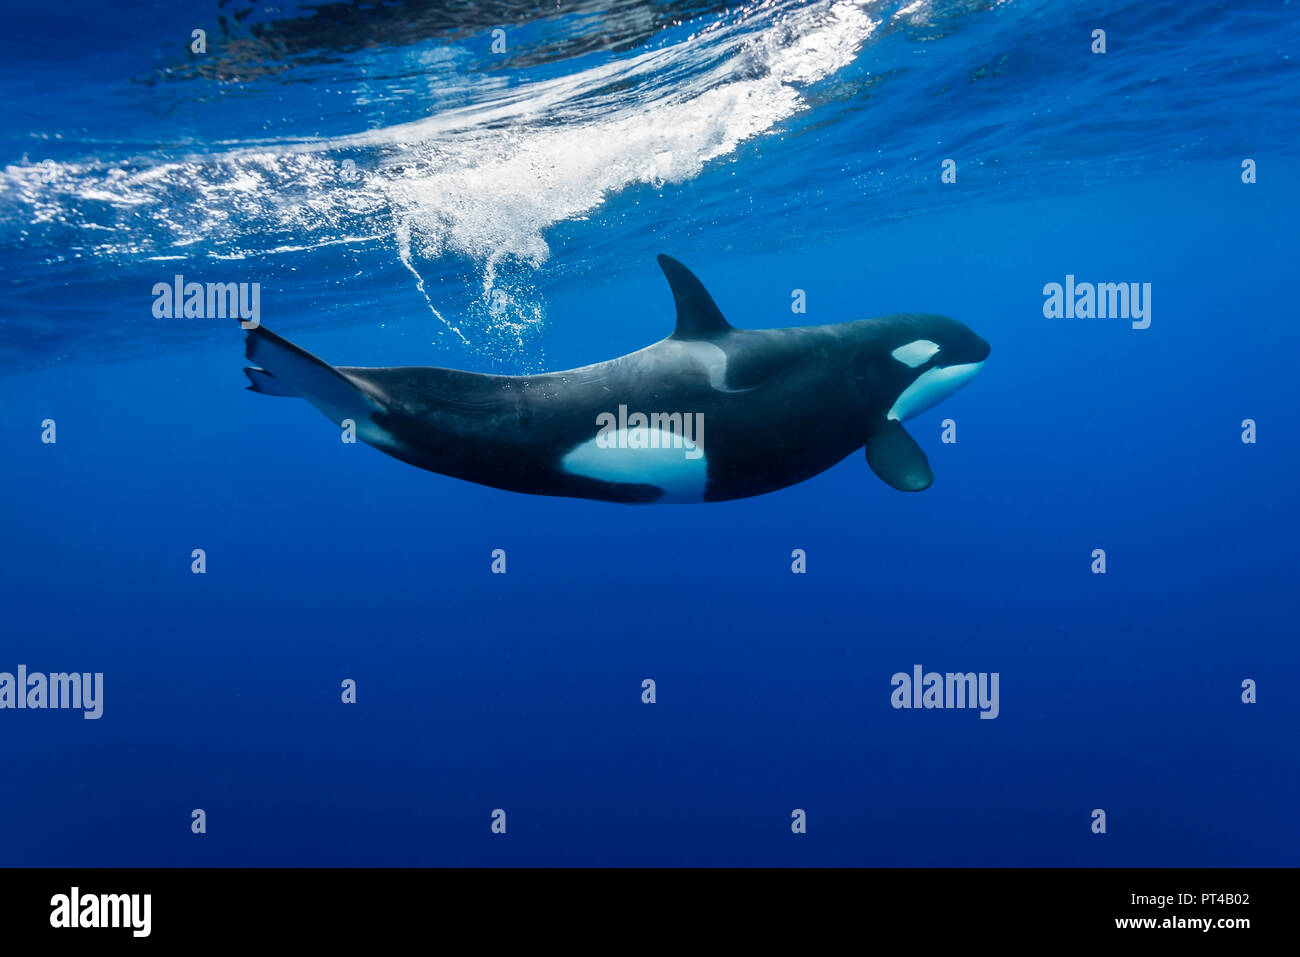 Killer whale, Pacific Ocean, New Zealand. - Stock Image